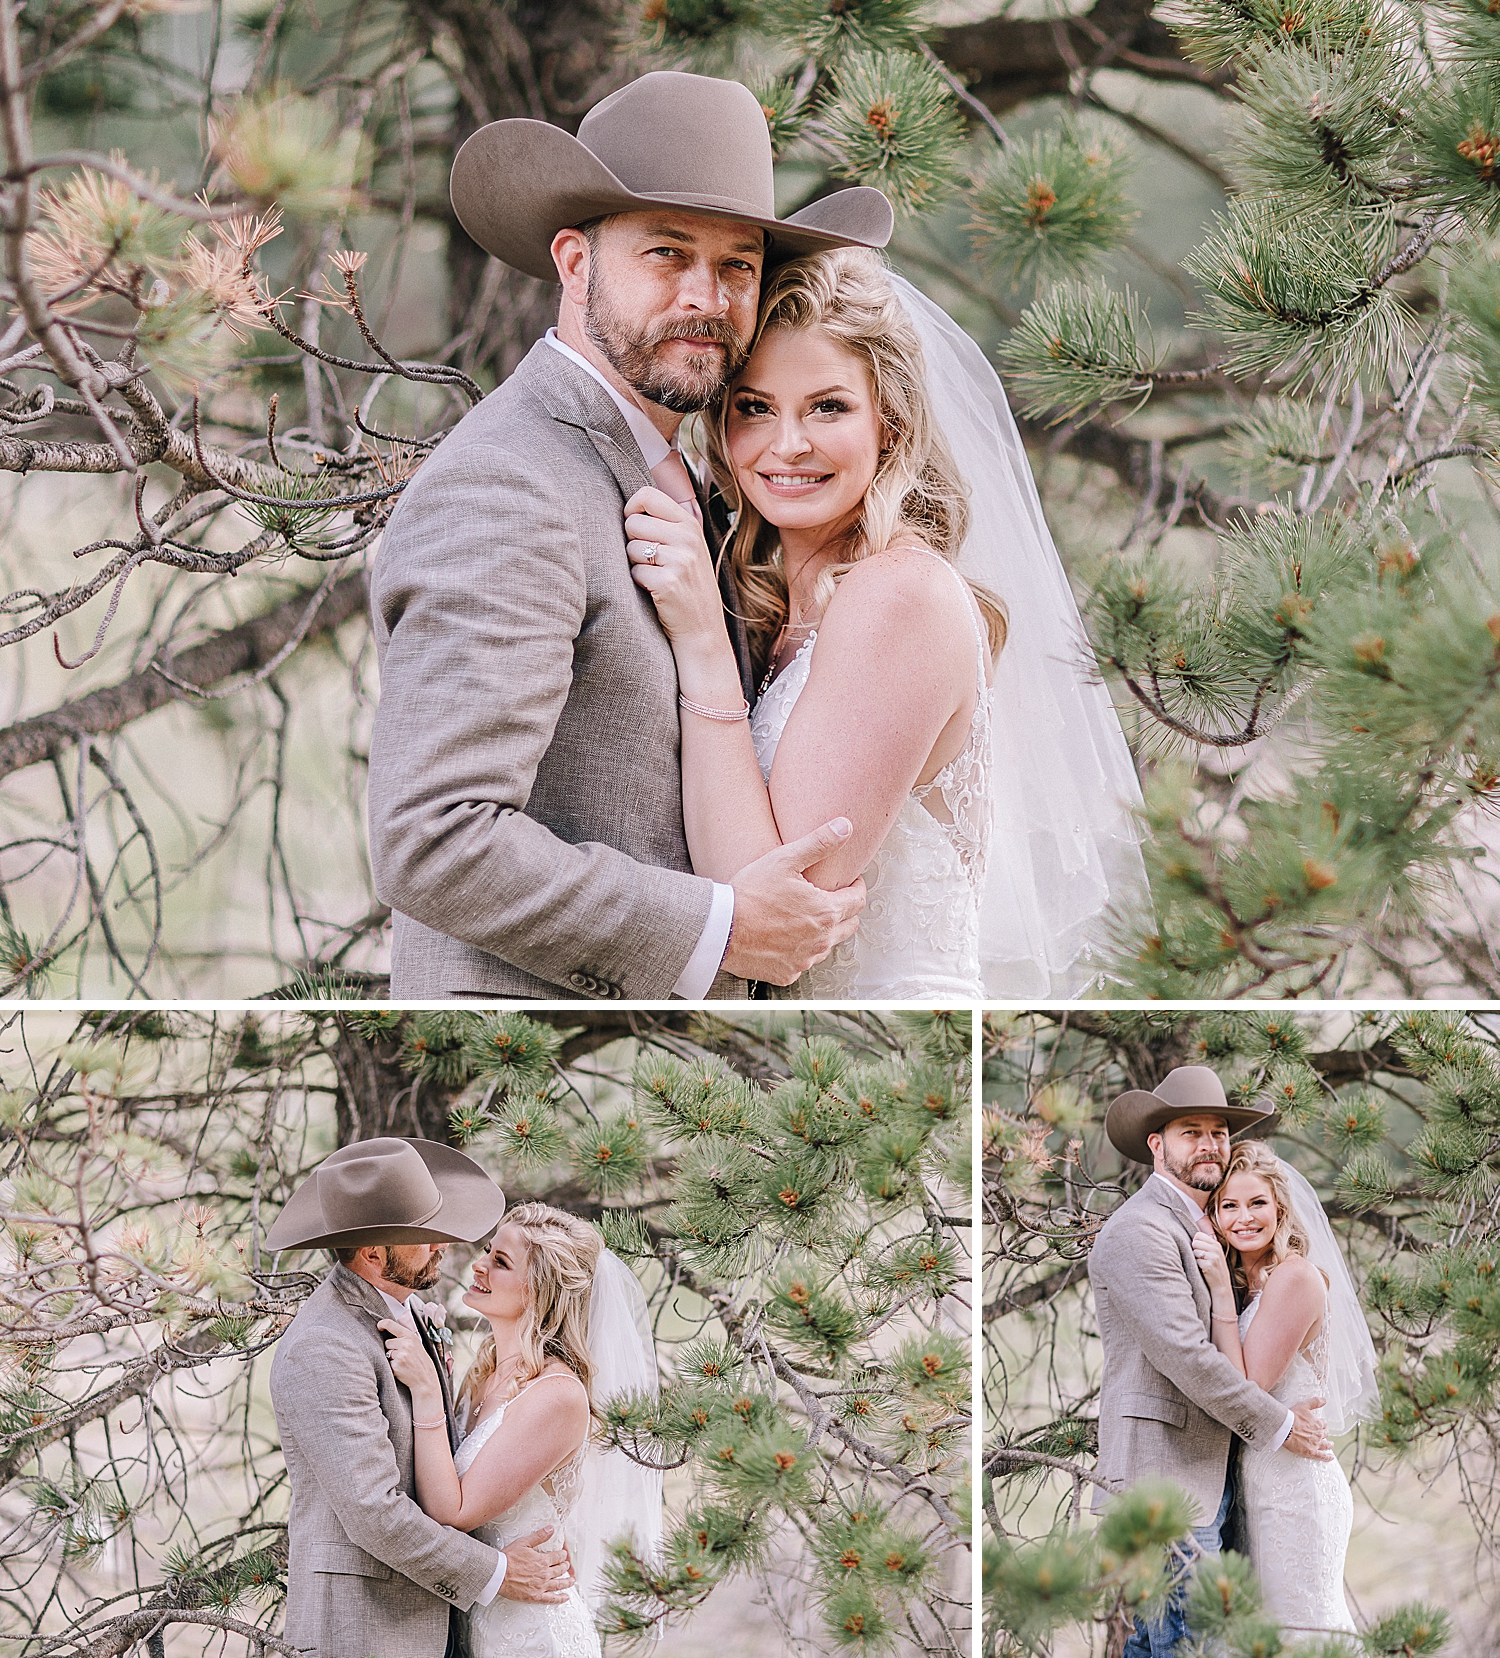 Carly-Barton-Photography-Rocky-Mountain-National-Park-Estes-Park-Wedding-Elopement_0003.jpg